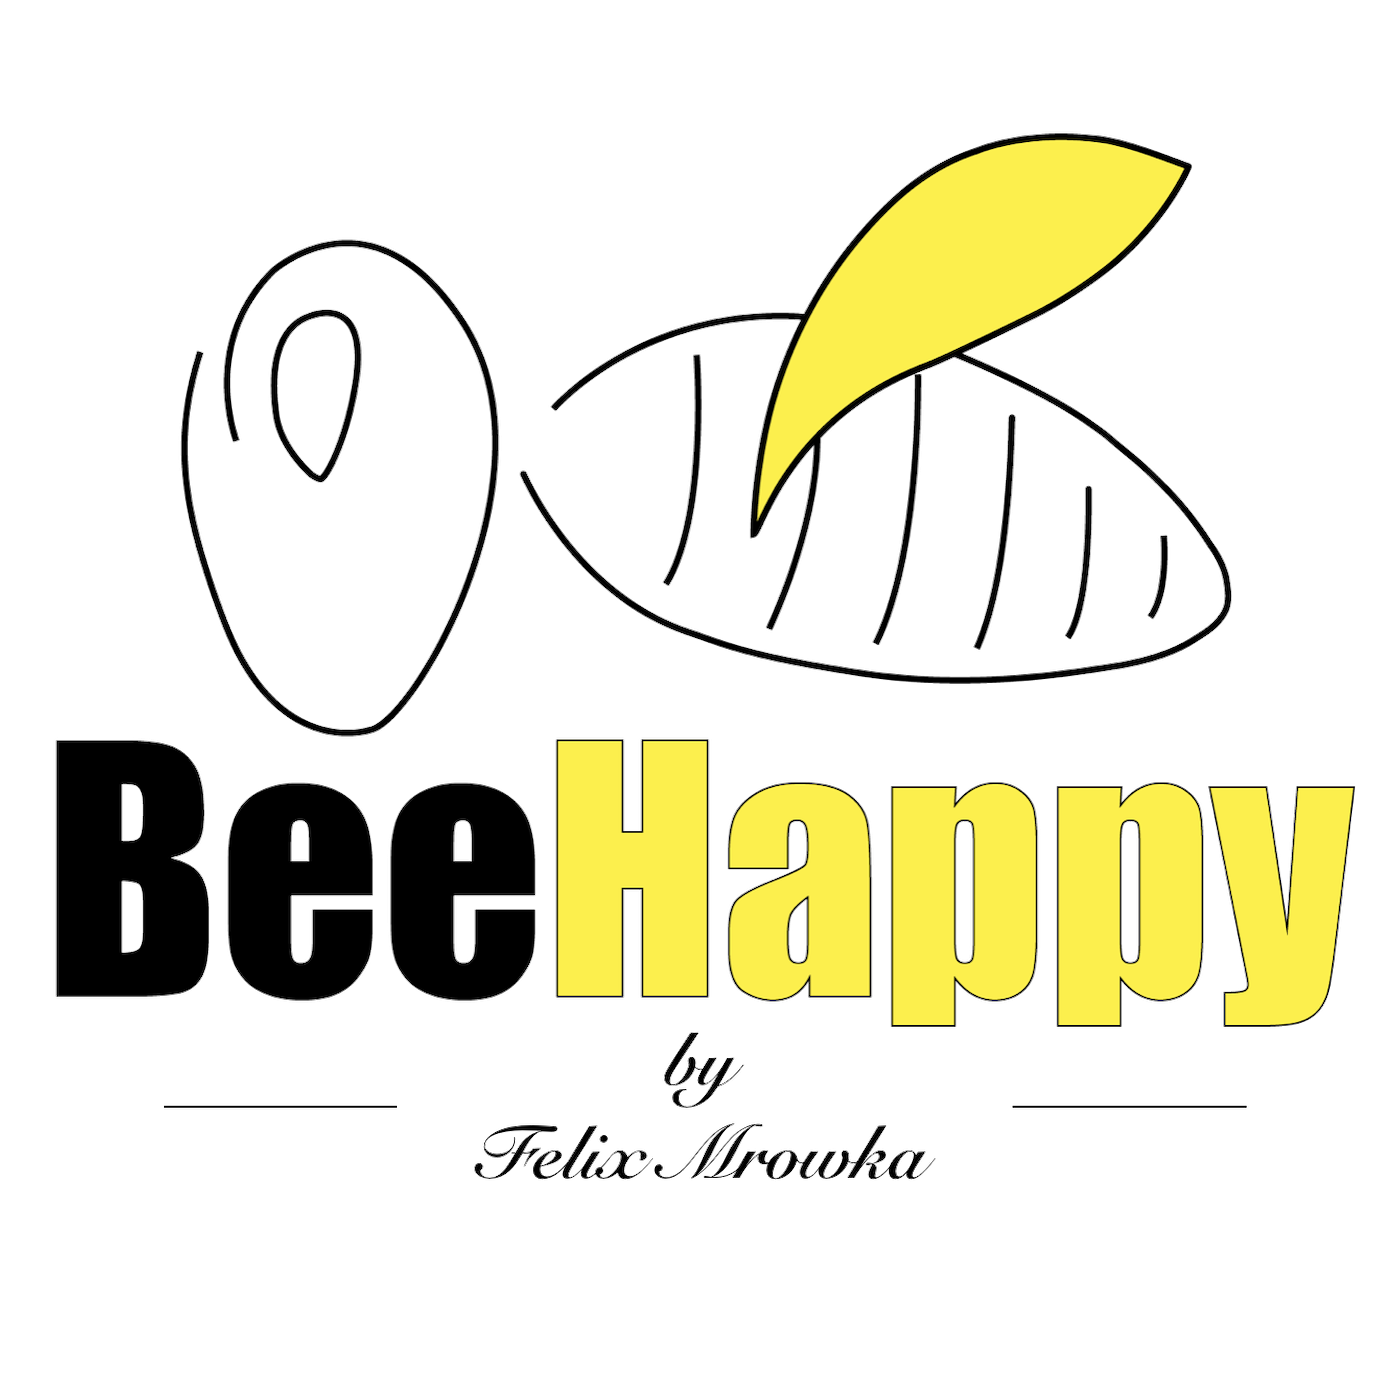 BeeHappy by Felix Mrowka